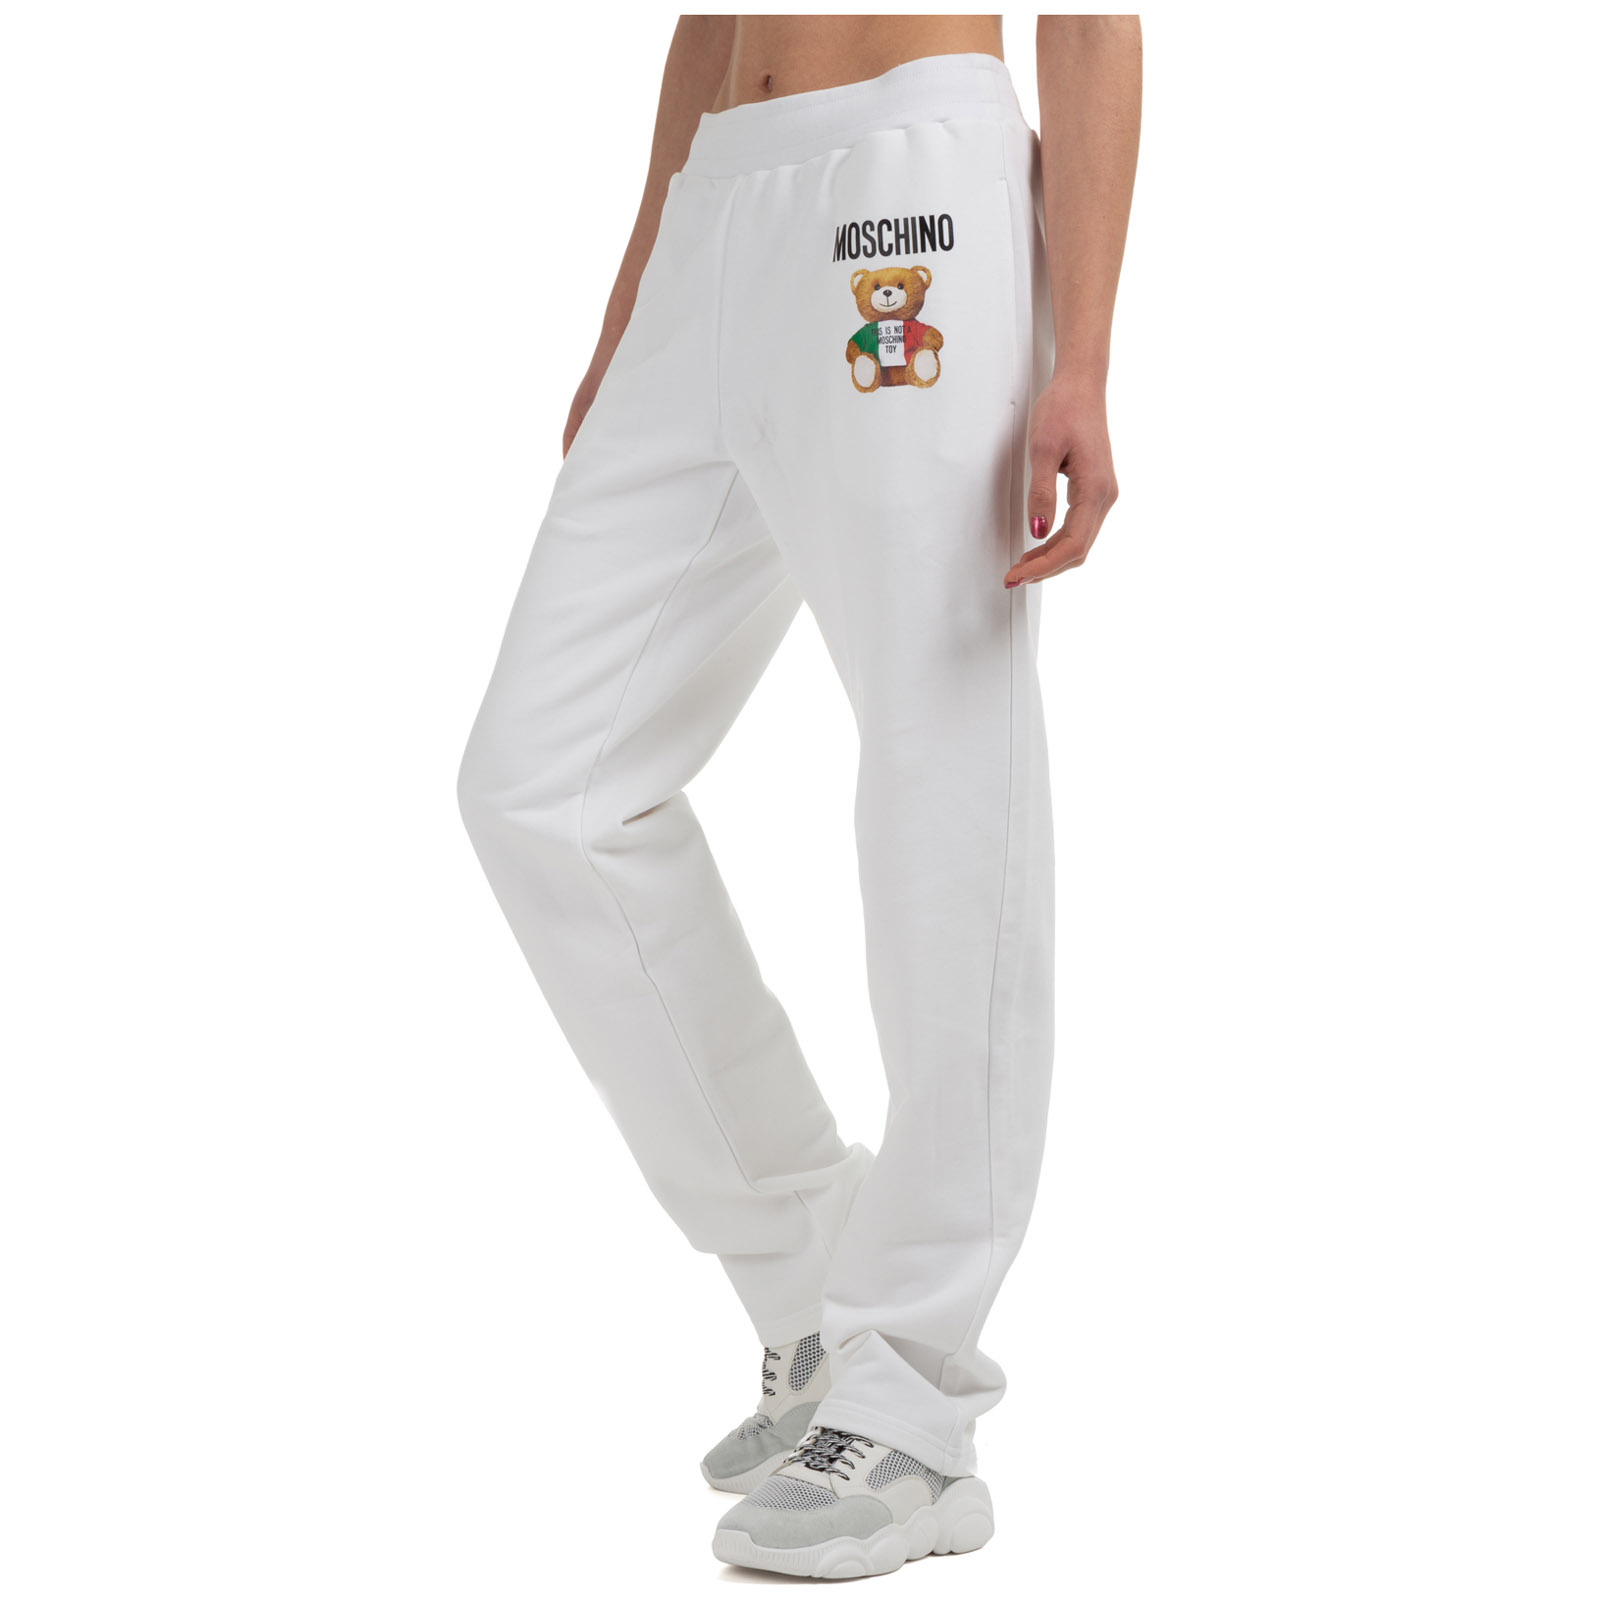 Moschino Pants WOMEN'S SPORT TRACKSUIT TROUSERS  TEDDY BEAR